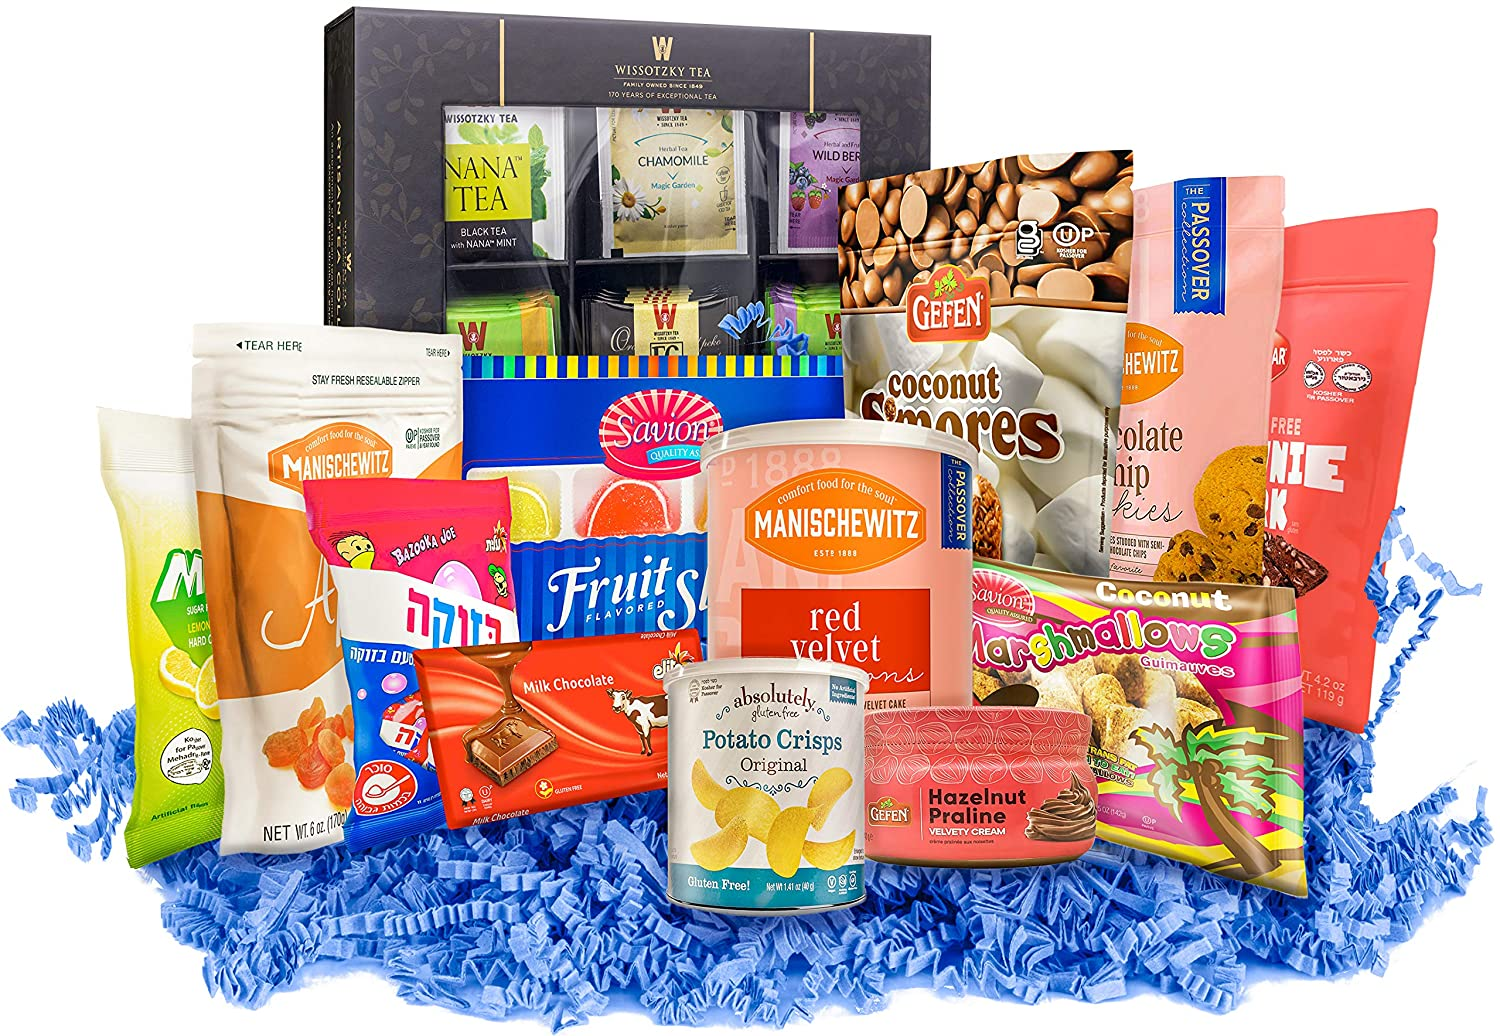 Gluten Free Kosher Sweets & Treats Gift Box   The Ultimate GF Variety Pack   Chocolates, Cookies, Macaroons, Teas, and more! All Gluten Free!   Share the Goodies with Family and Friends